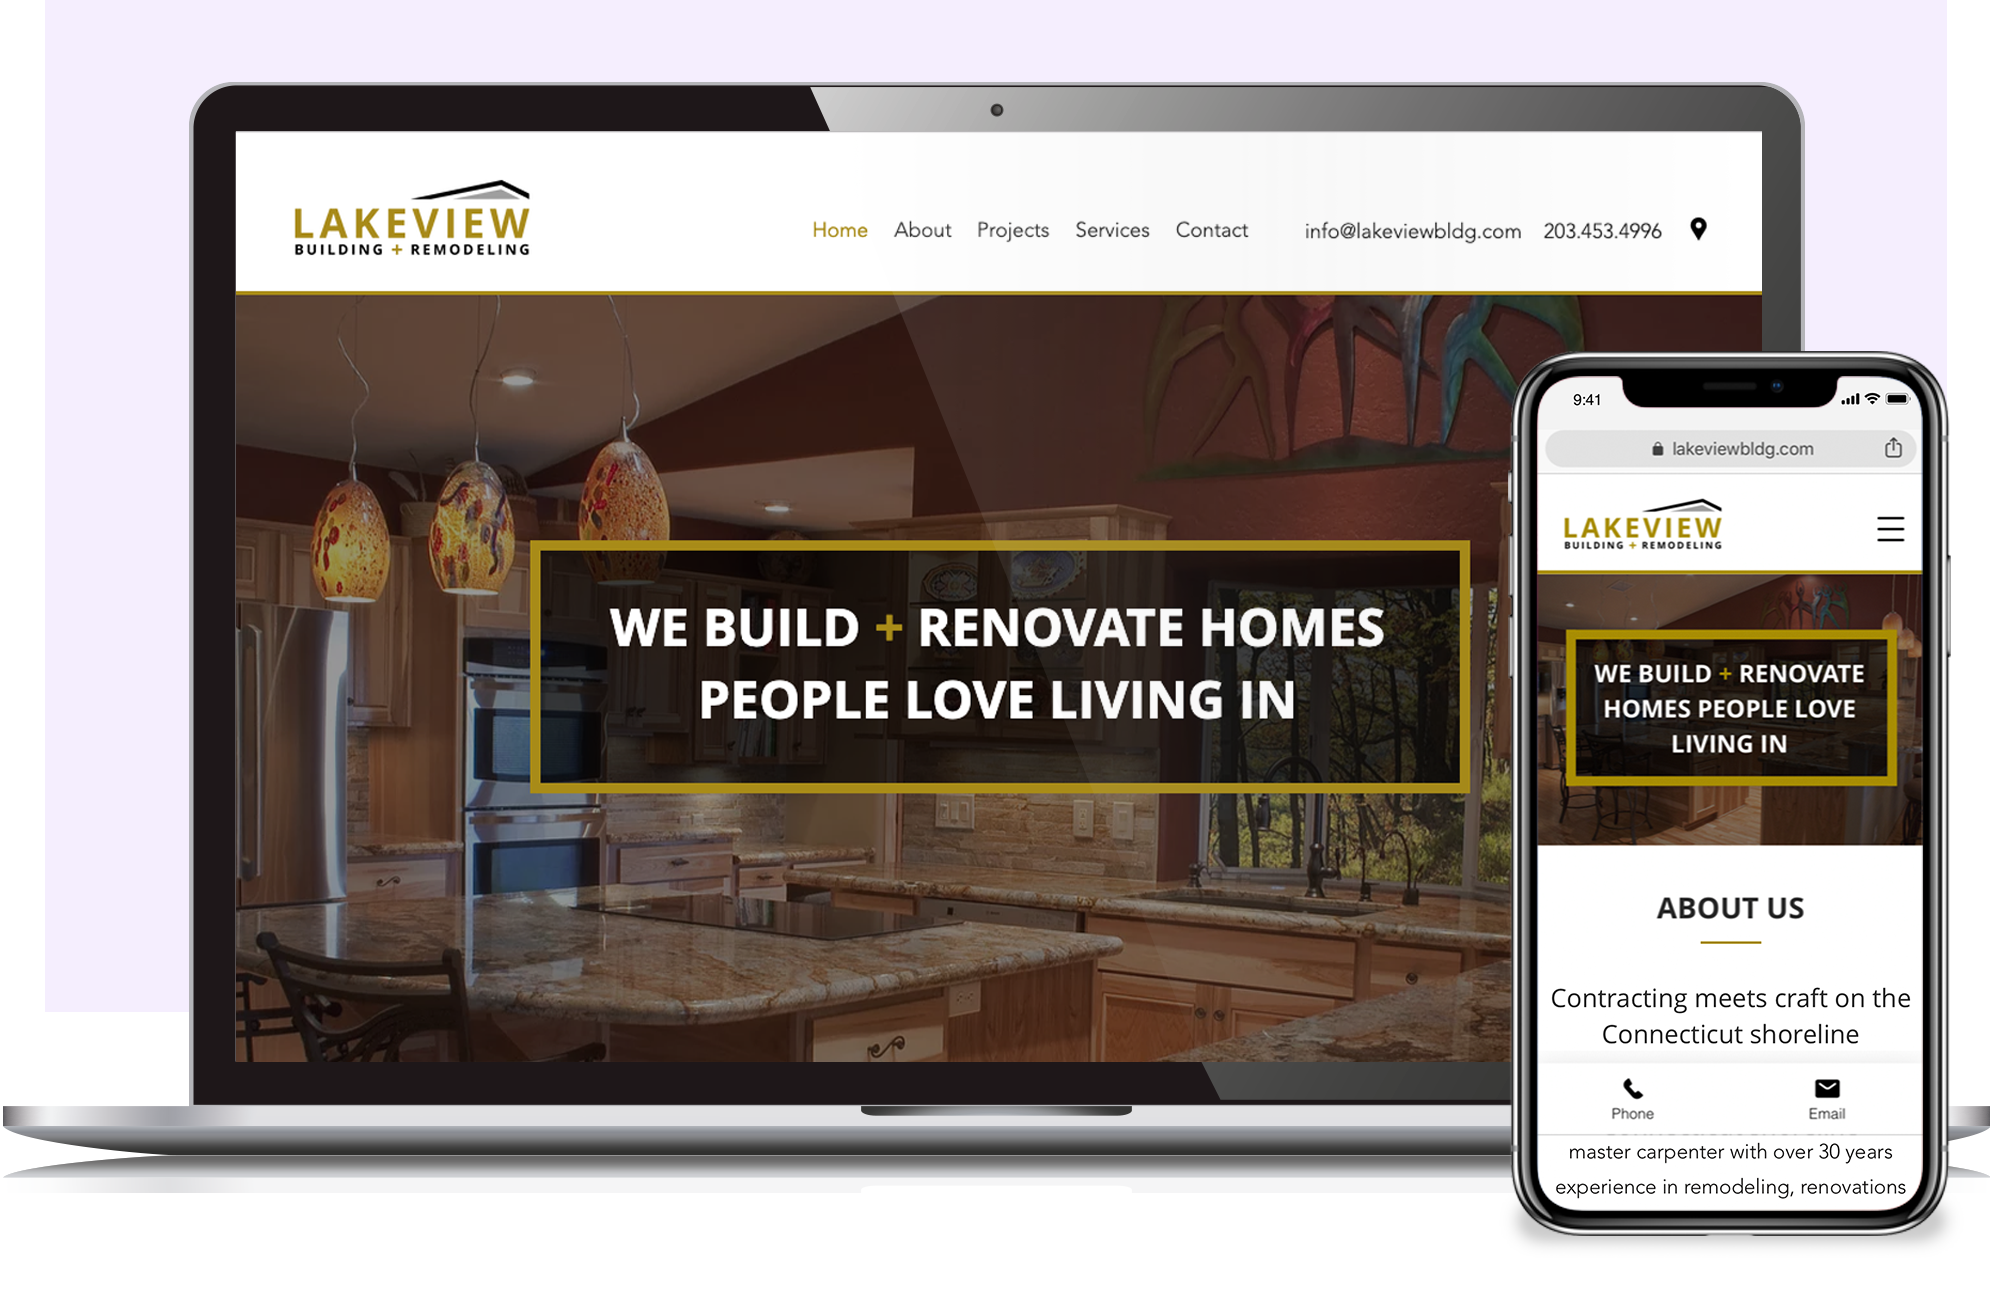 Lakeview Building & Remodeling website